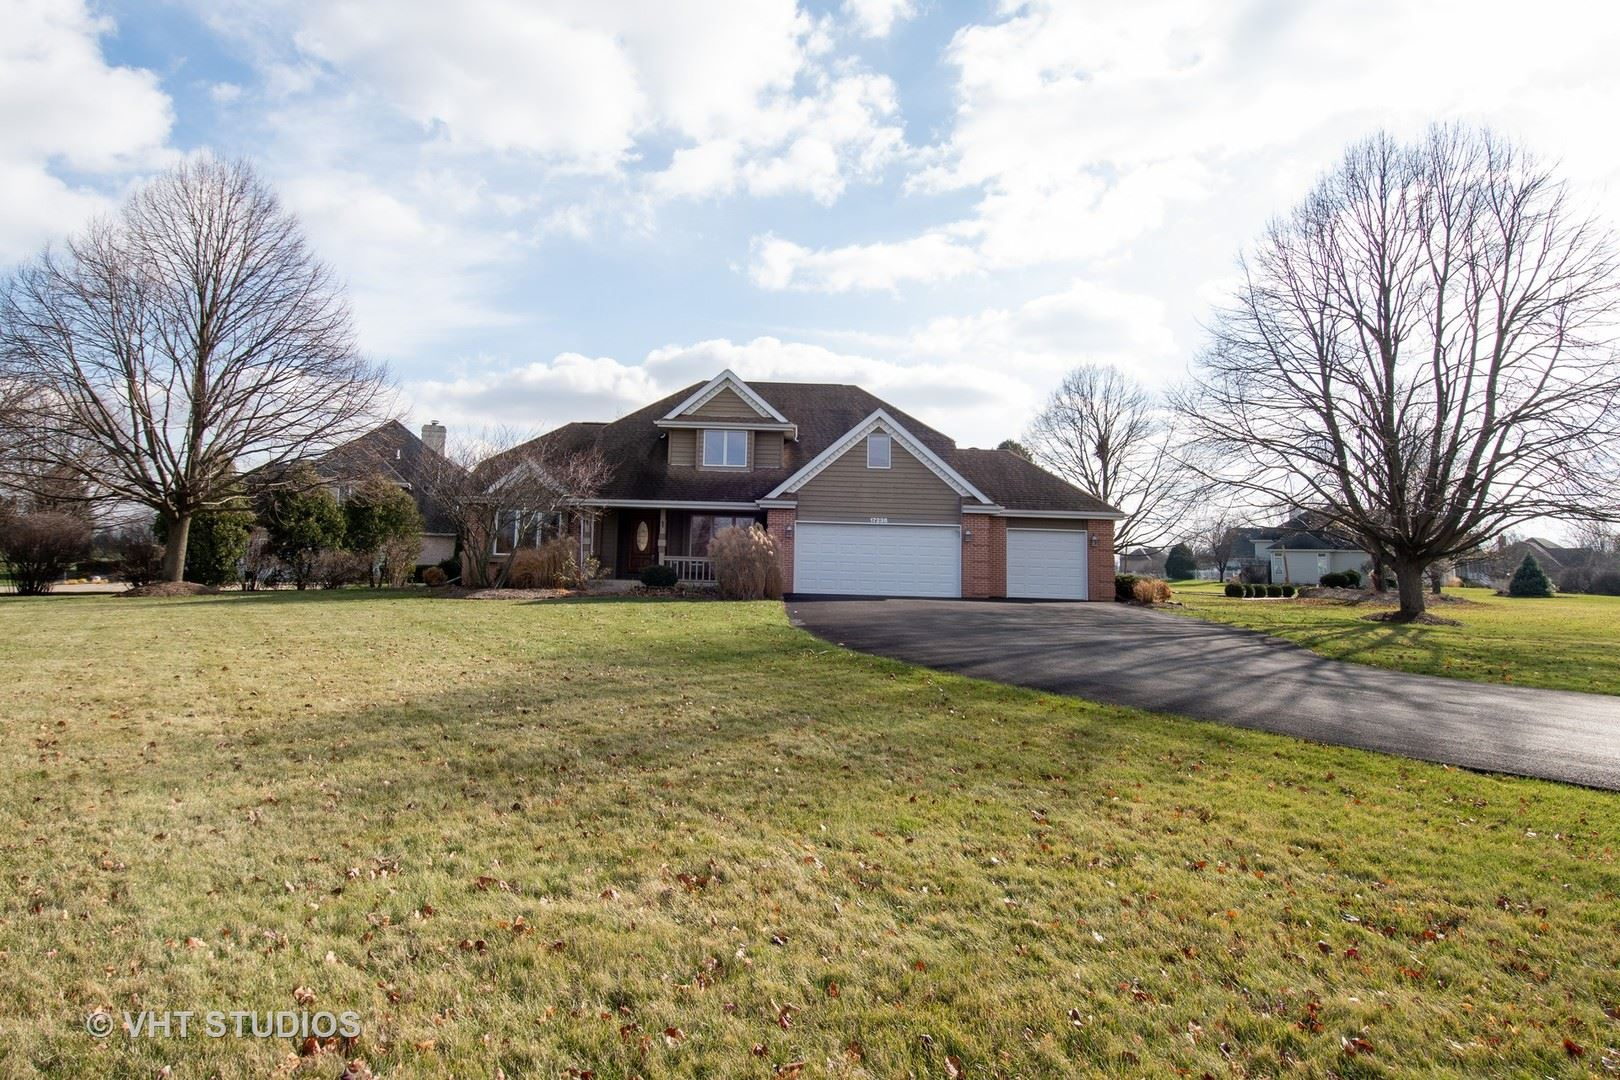 Photo of 17238 S HONORA Drive, Plainfield, IL 60586 (MLS # 10940577)